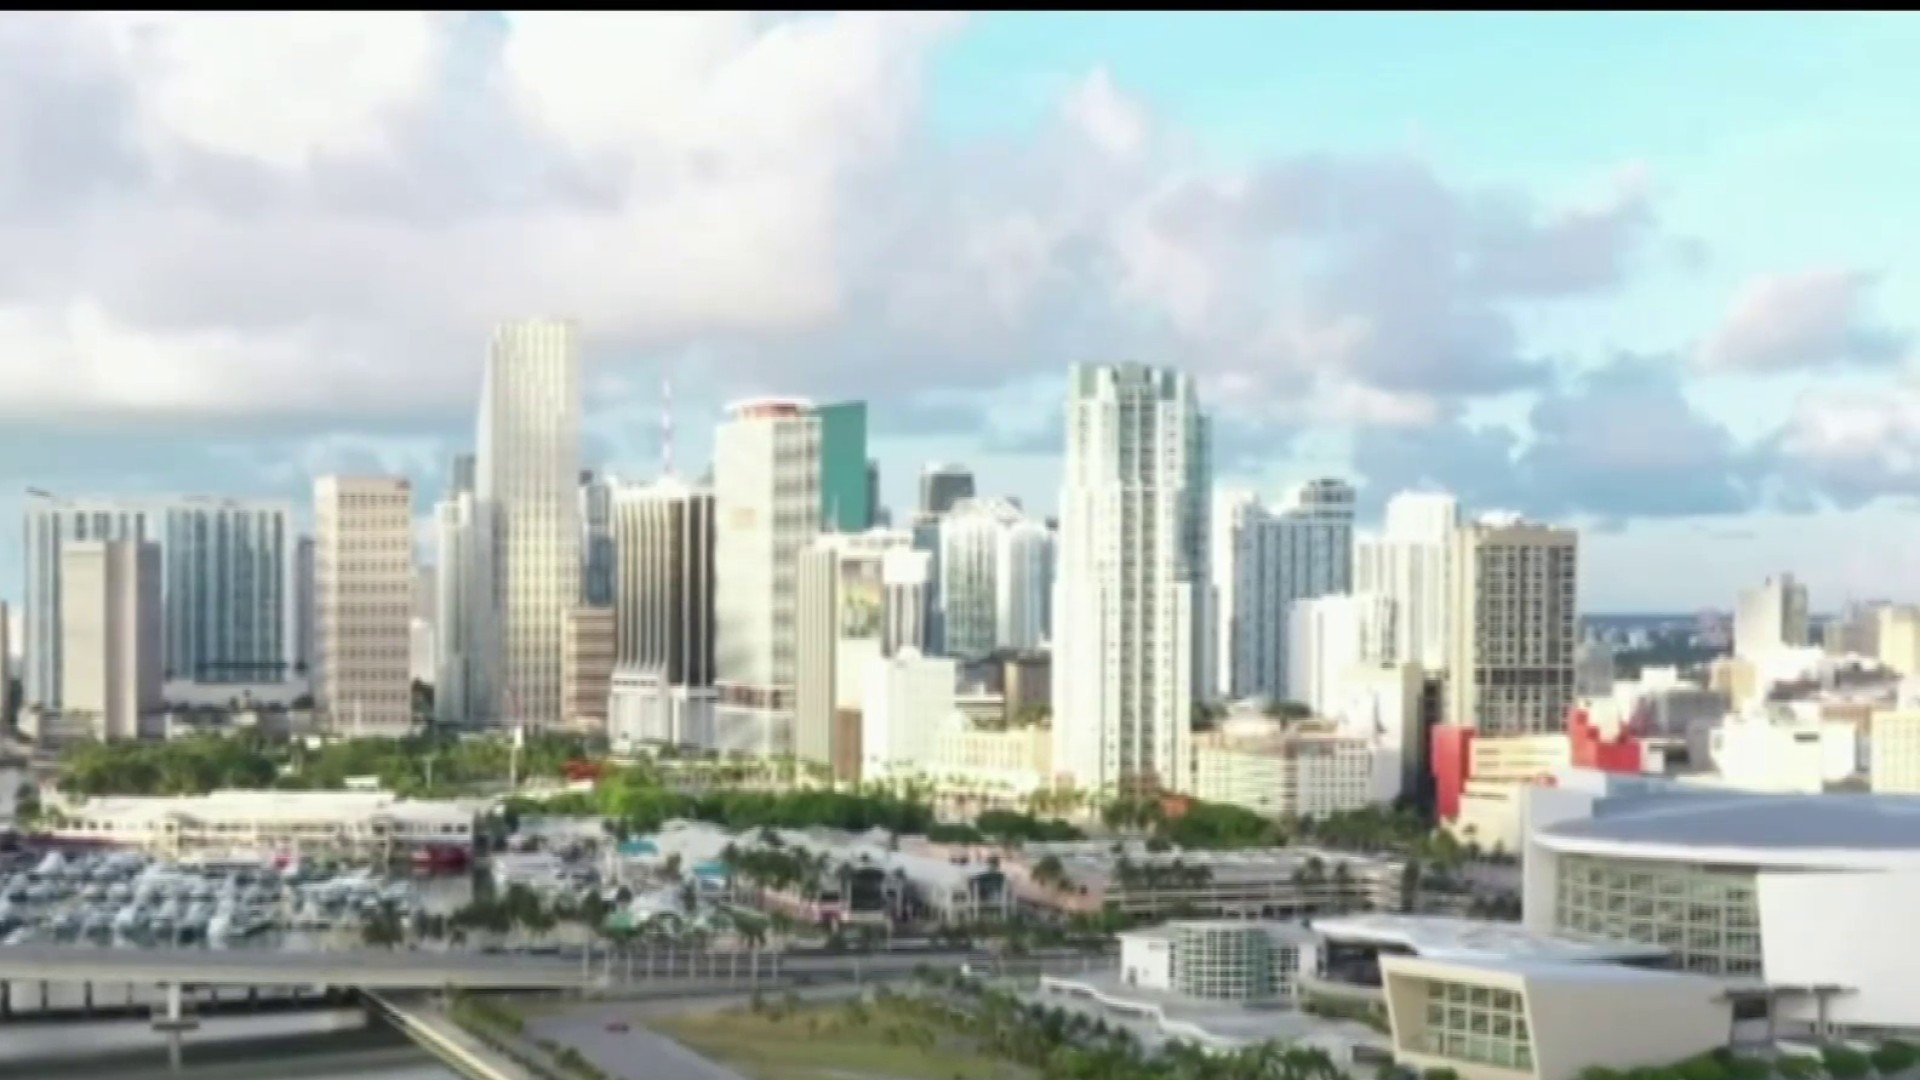 Miami-Dade County Leaders Give Update on #Resilient305 Project